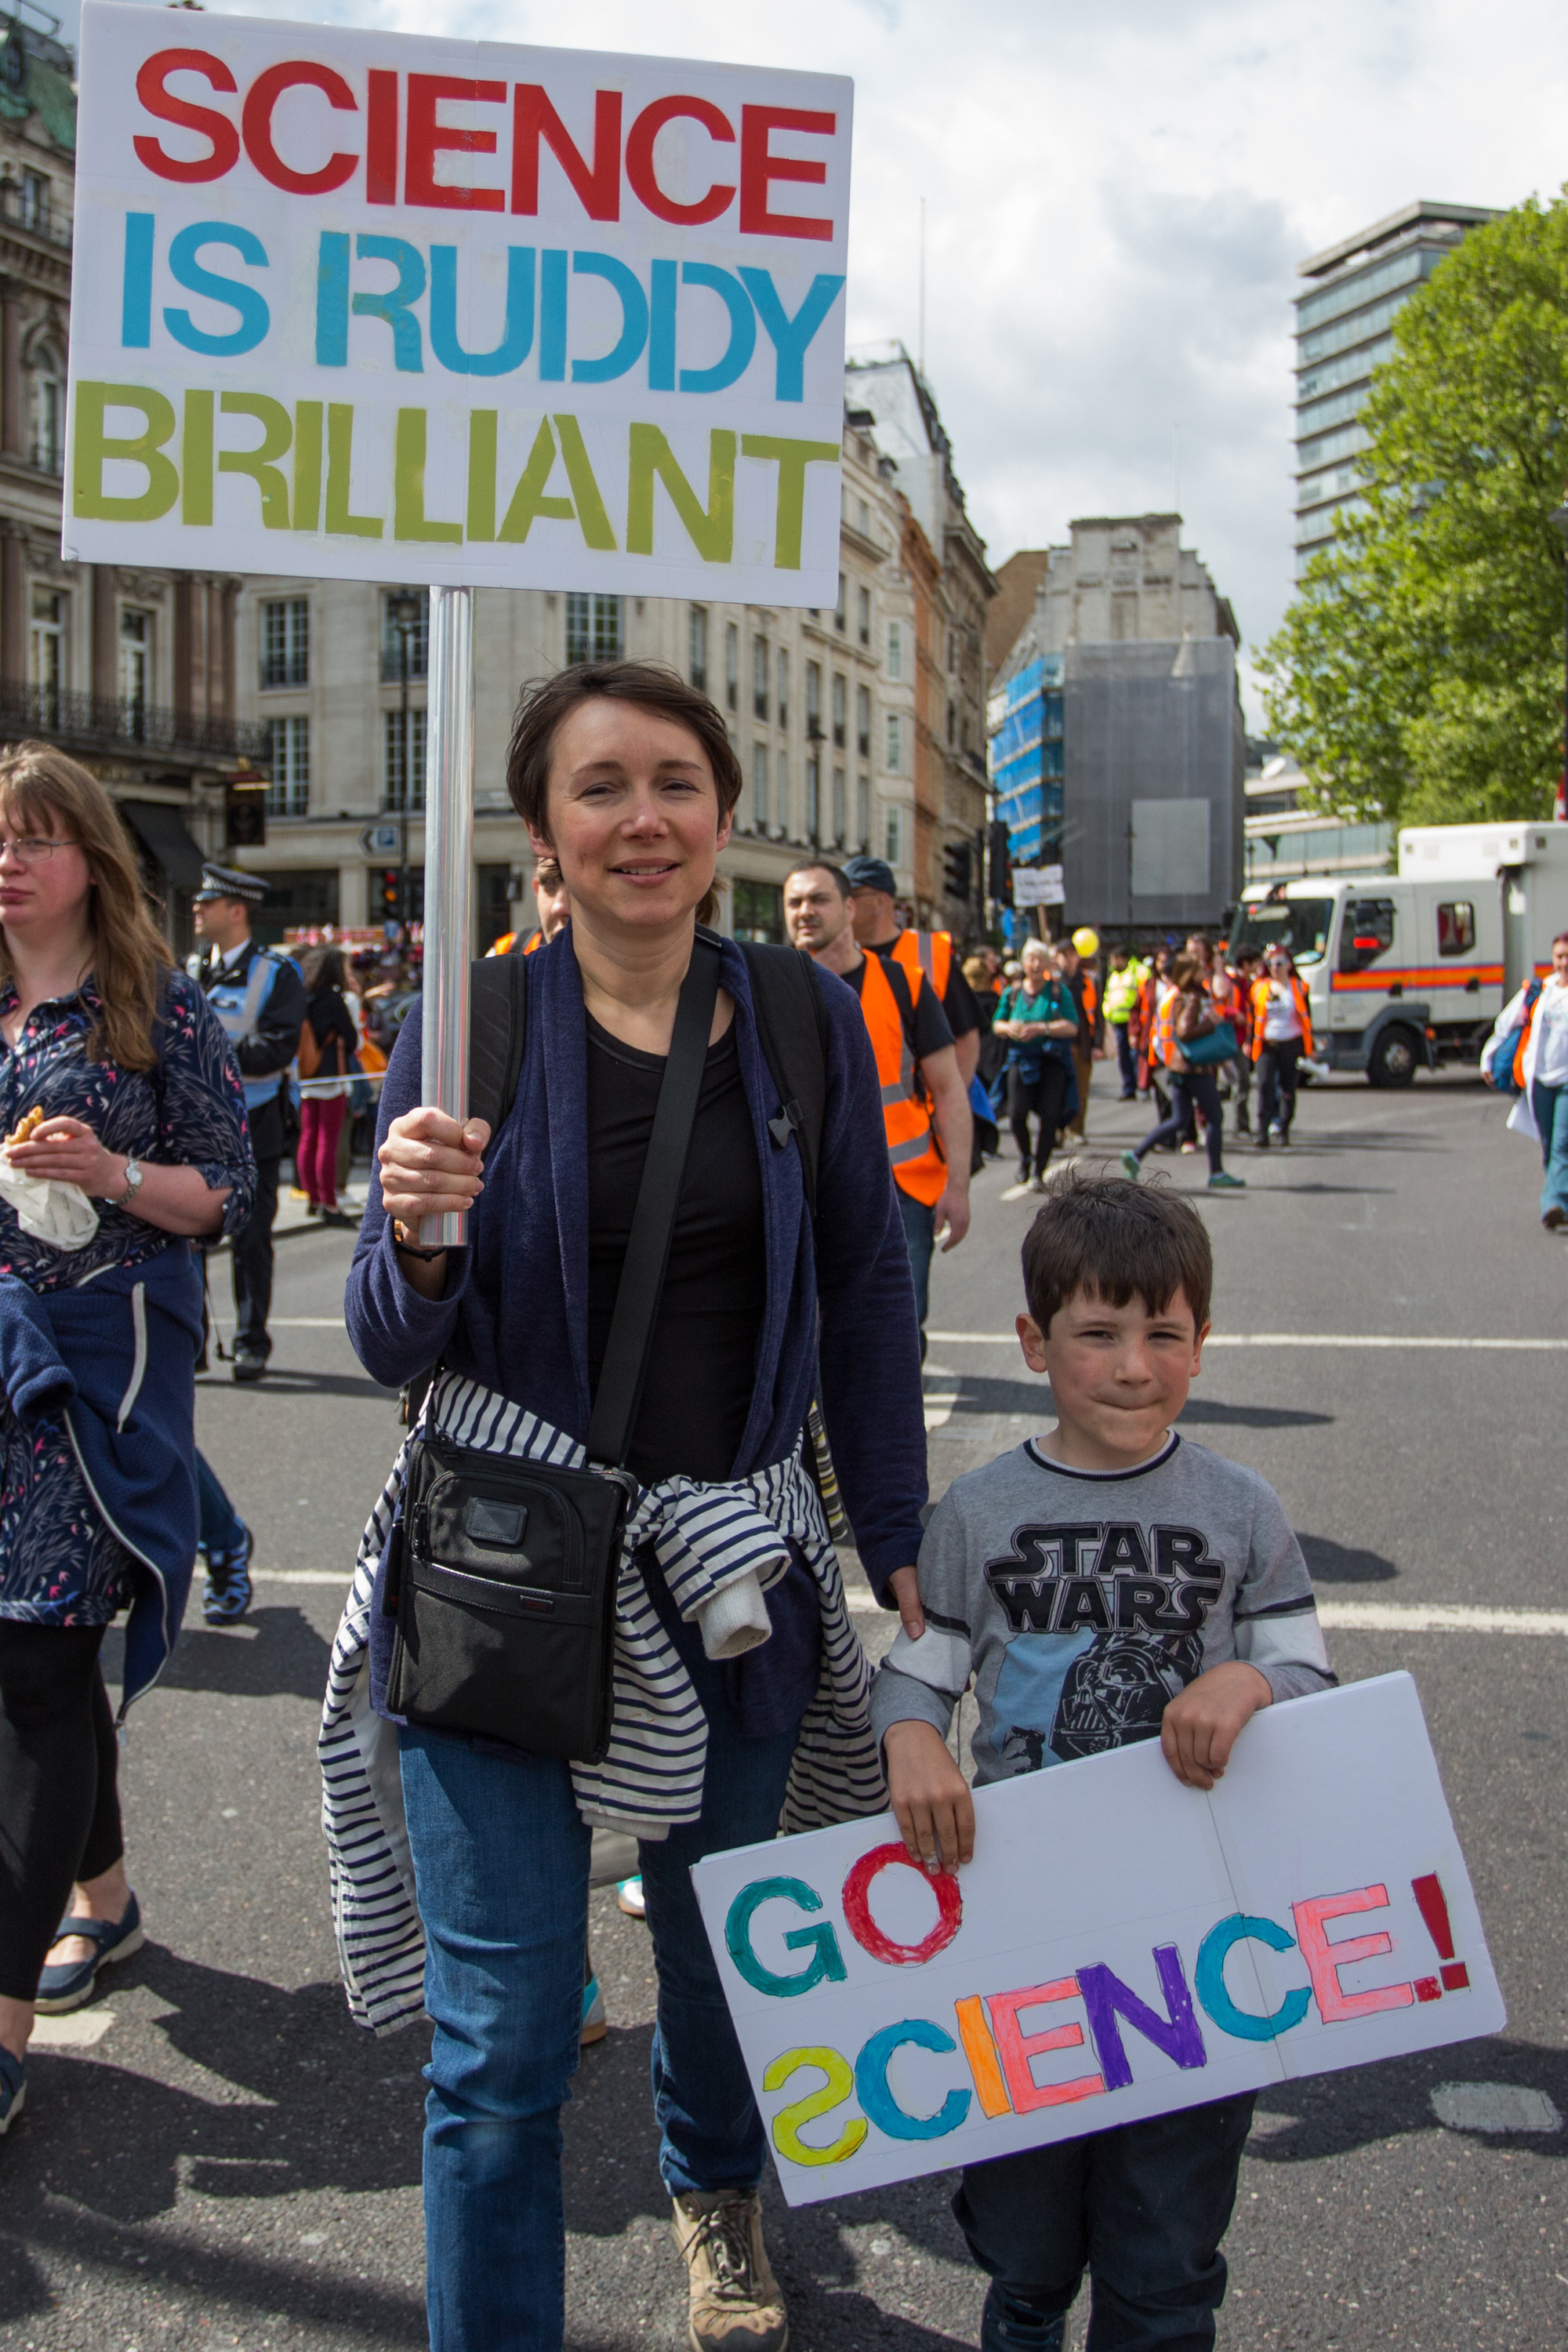 Scientists and science enthusiasts in London join hundreds of thousands of people in more than 400 locations across the globe to recognise scientific progress, raise awareness of scientific discovery, and defend scientific integrity.                                                                      Featuring: Atmosphere, View                                   Where: London, United Kingdom                                   When: 22 Apr 2017                                   Credit: Wheatley/WENN